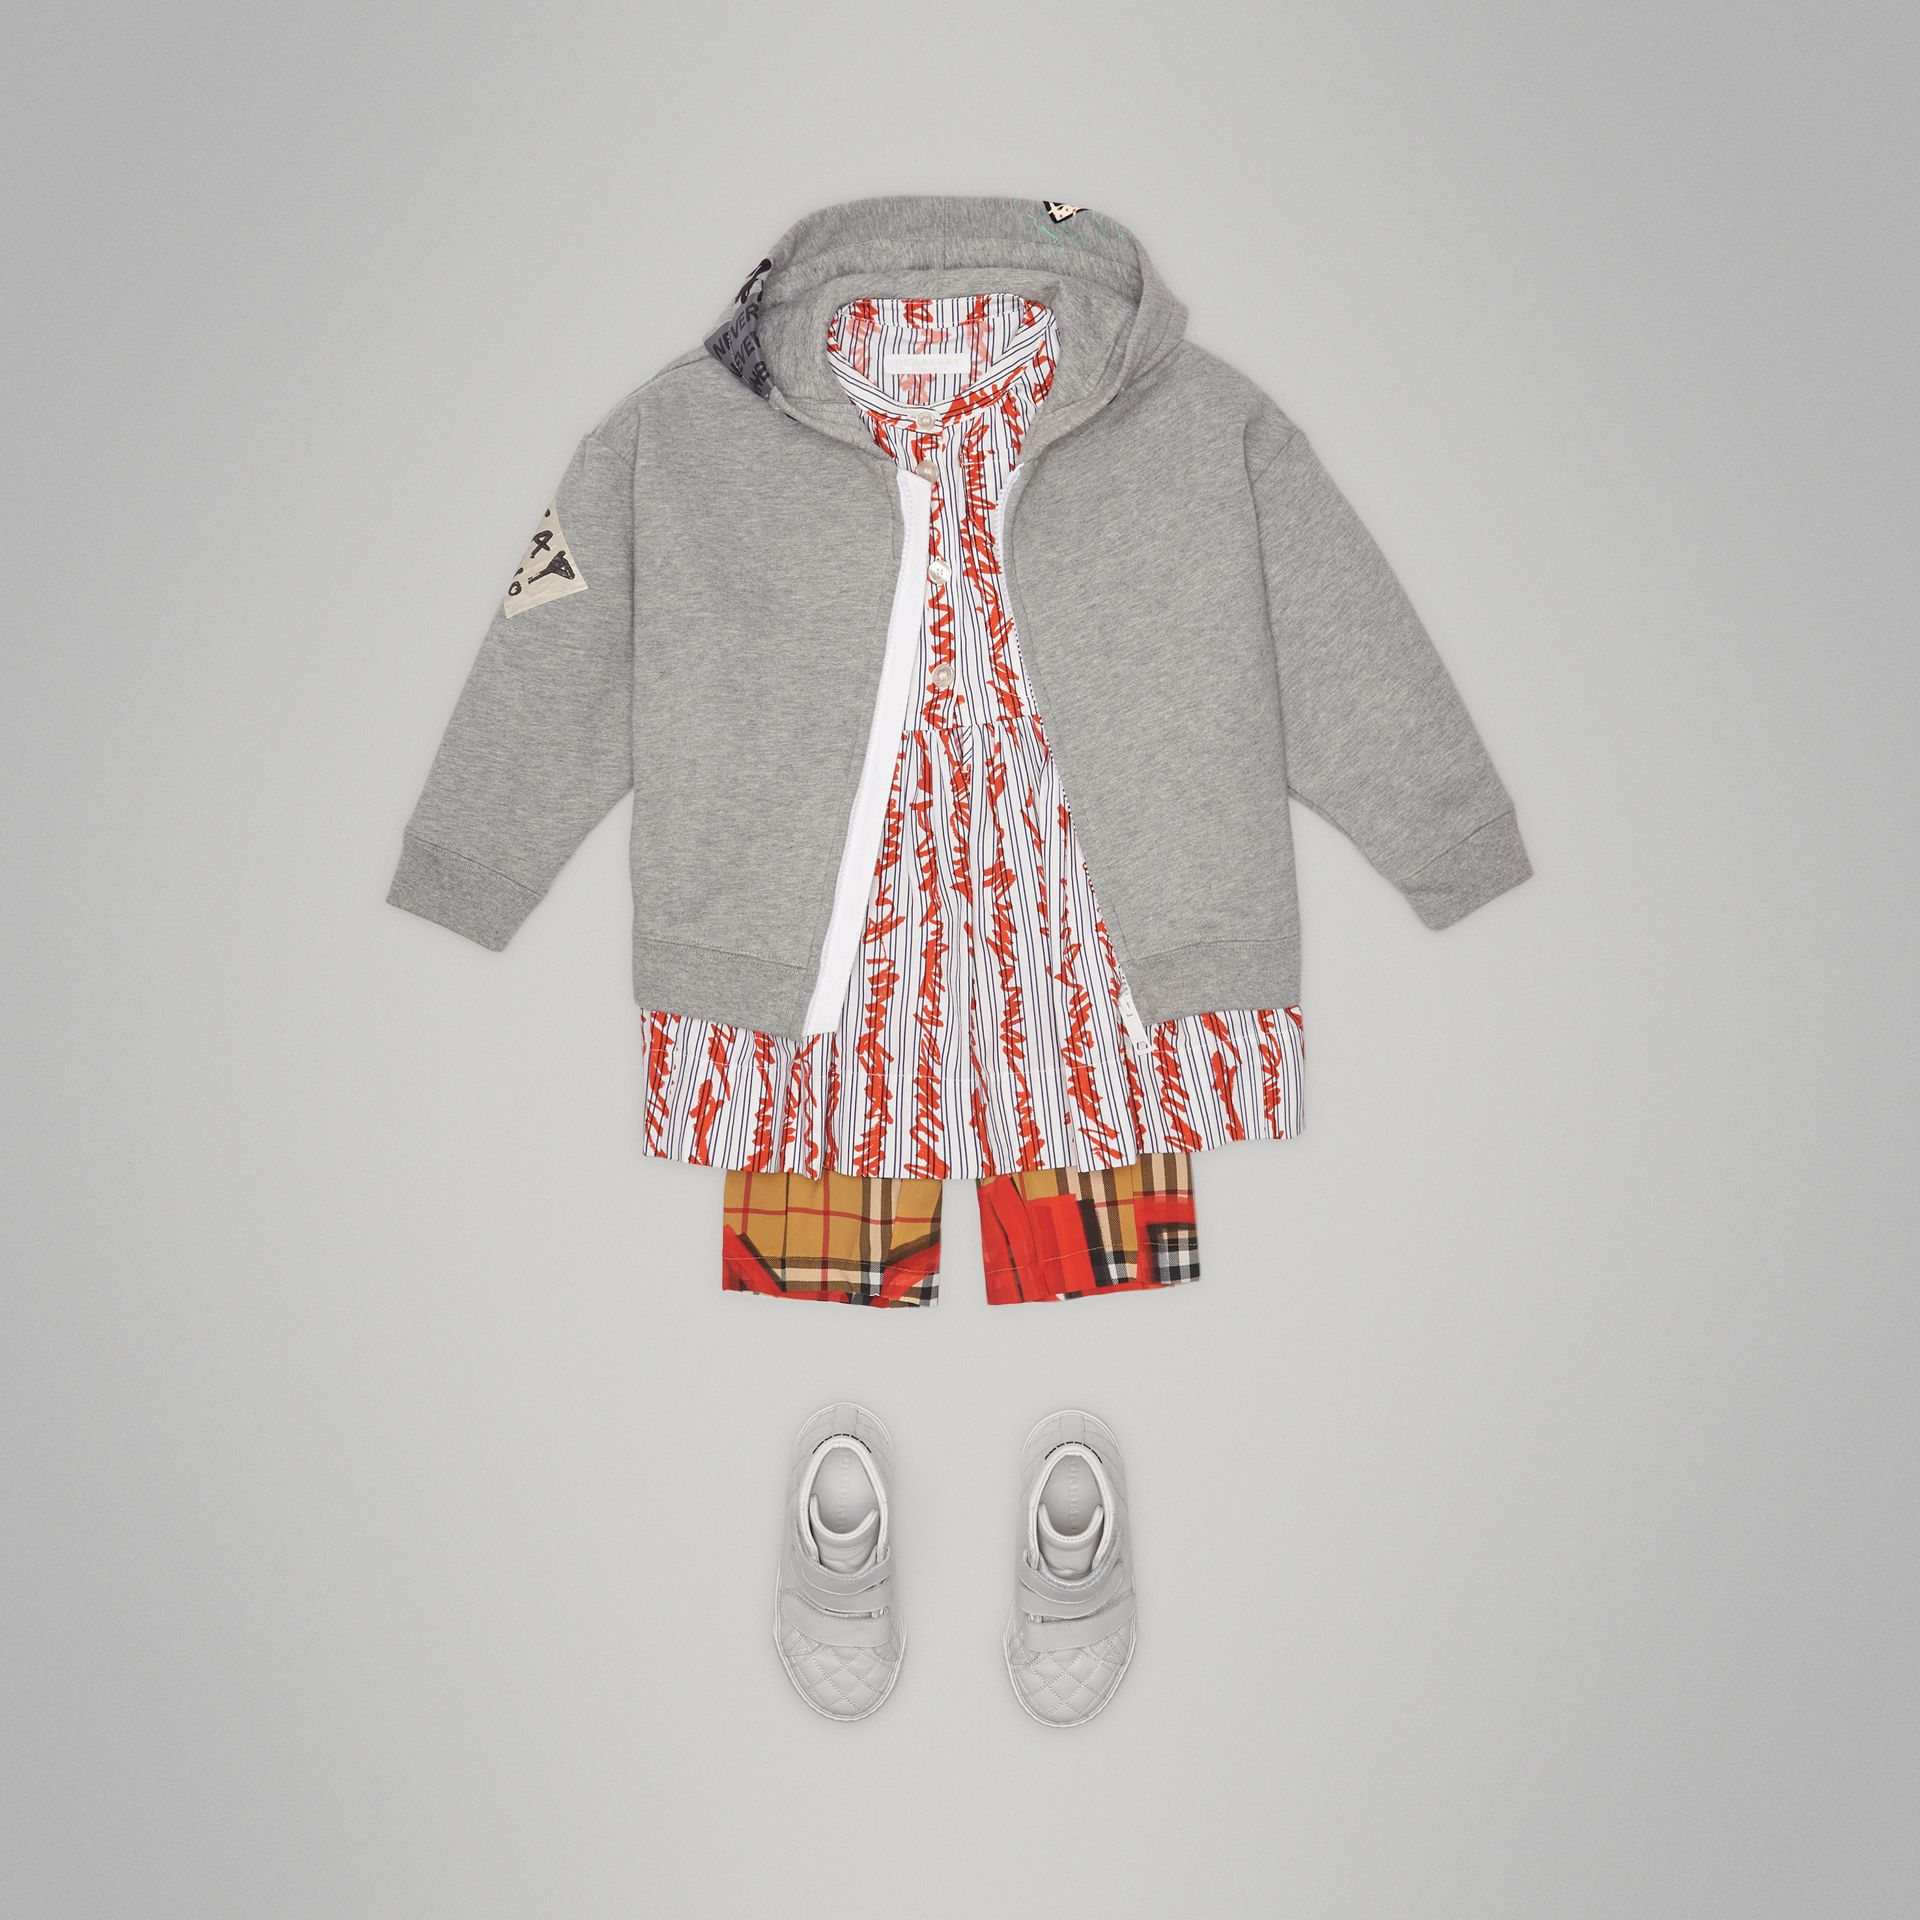 London Street Art Print Cotton Hooded Top in Grey Melange | Burberry Singapore - gallery image 2